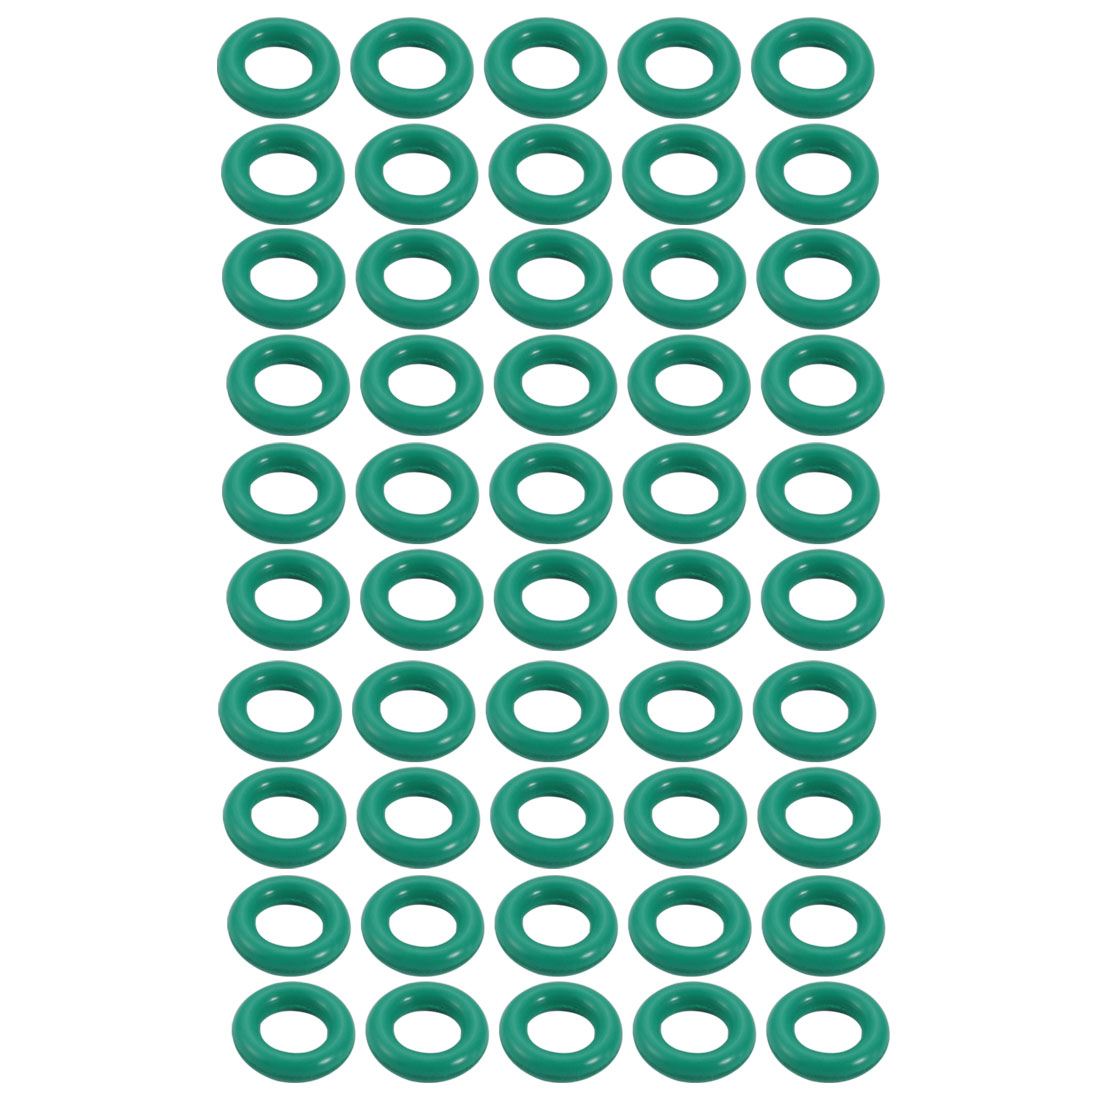 50pcs 8.5mm x 1.9mm Size Mechanical Rubber O Ring Oil Seal Gaskets Green